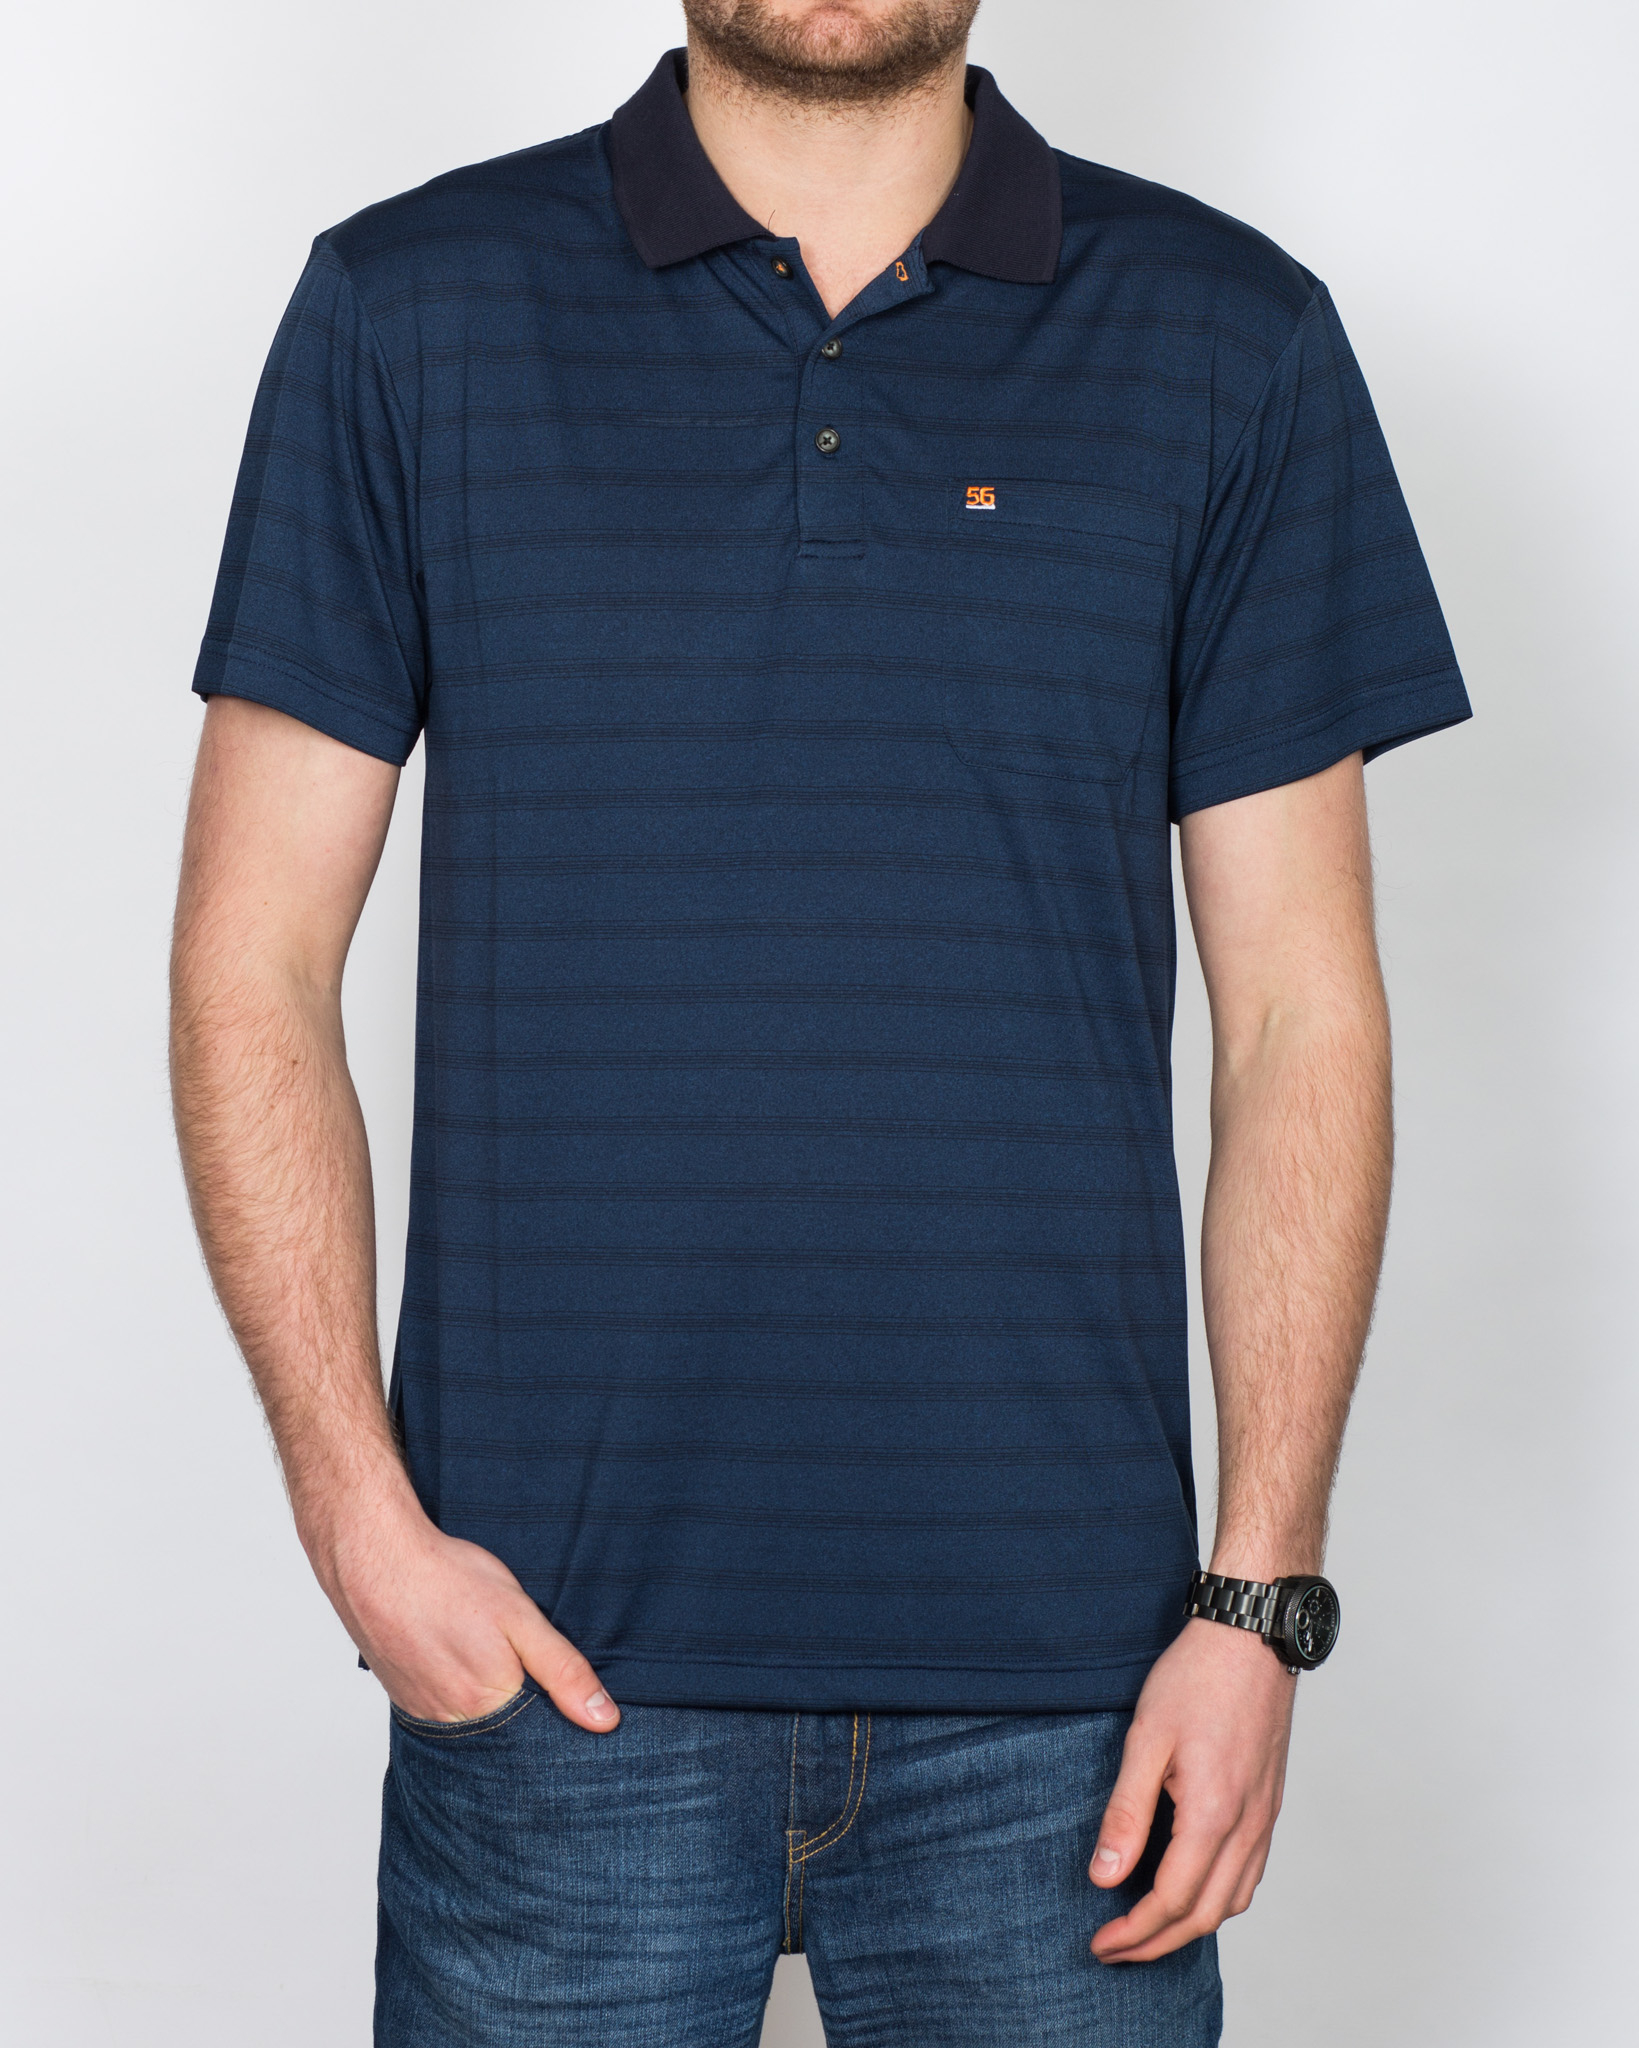 North 56 Cool Effect Tall Polo Shirt (navy)